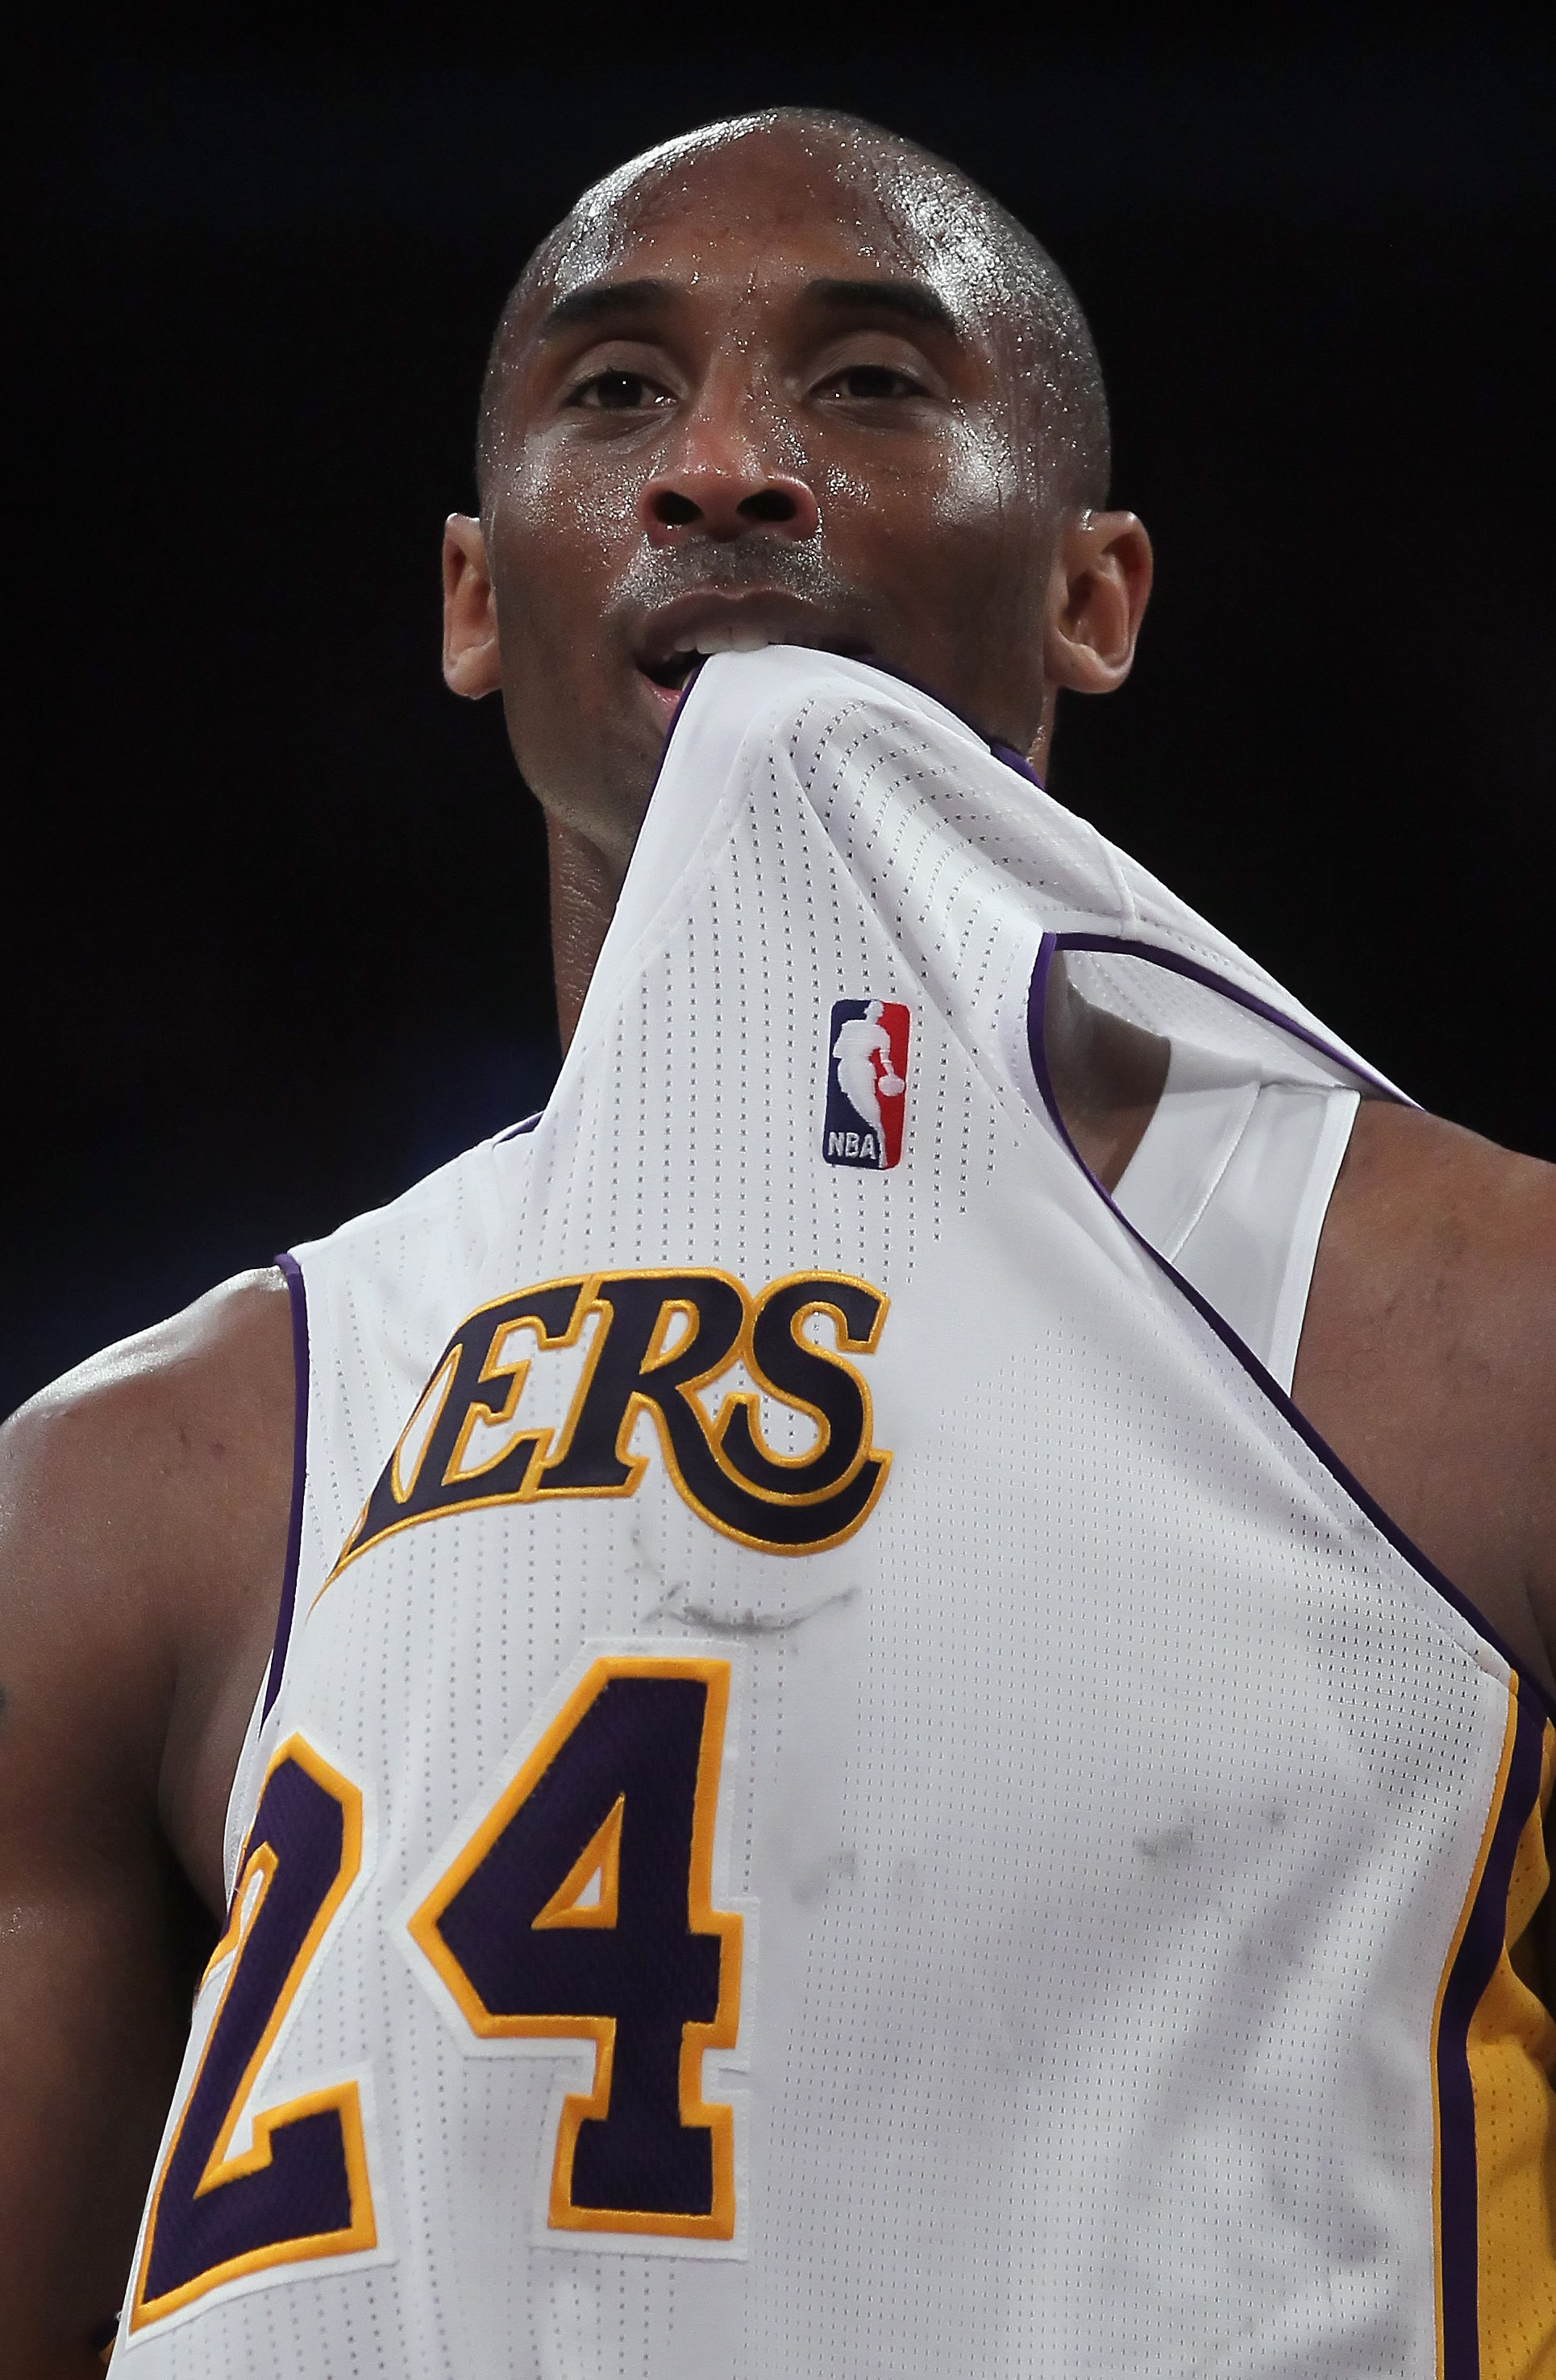 LOS ANGELES, CA - APRIL 10:  Kobe Bryant #24 of the Los Angeles Lakers puts his jersey in his mouth after committing a foul in the second half against the Oklahoma City Thunder at Staples Center on April 10, 2011 in Los Angeles, California. The Thunder de